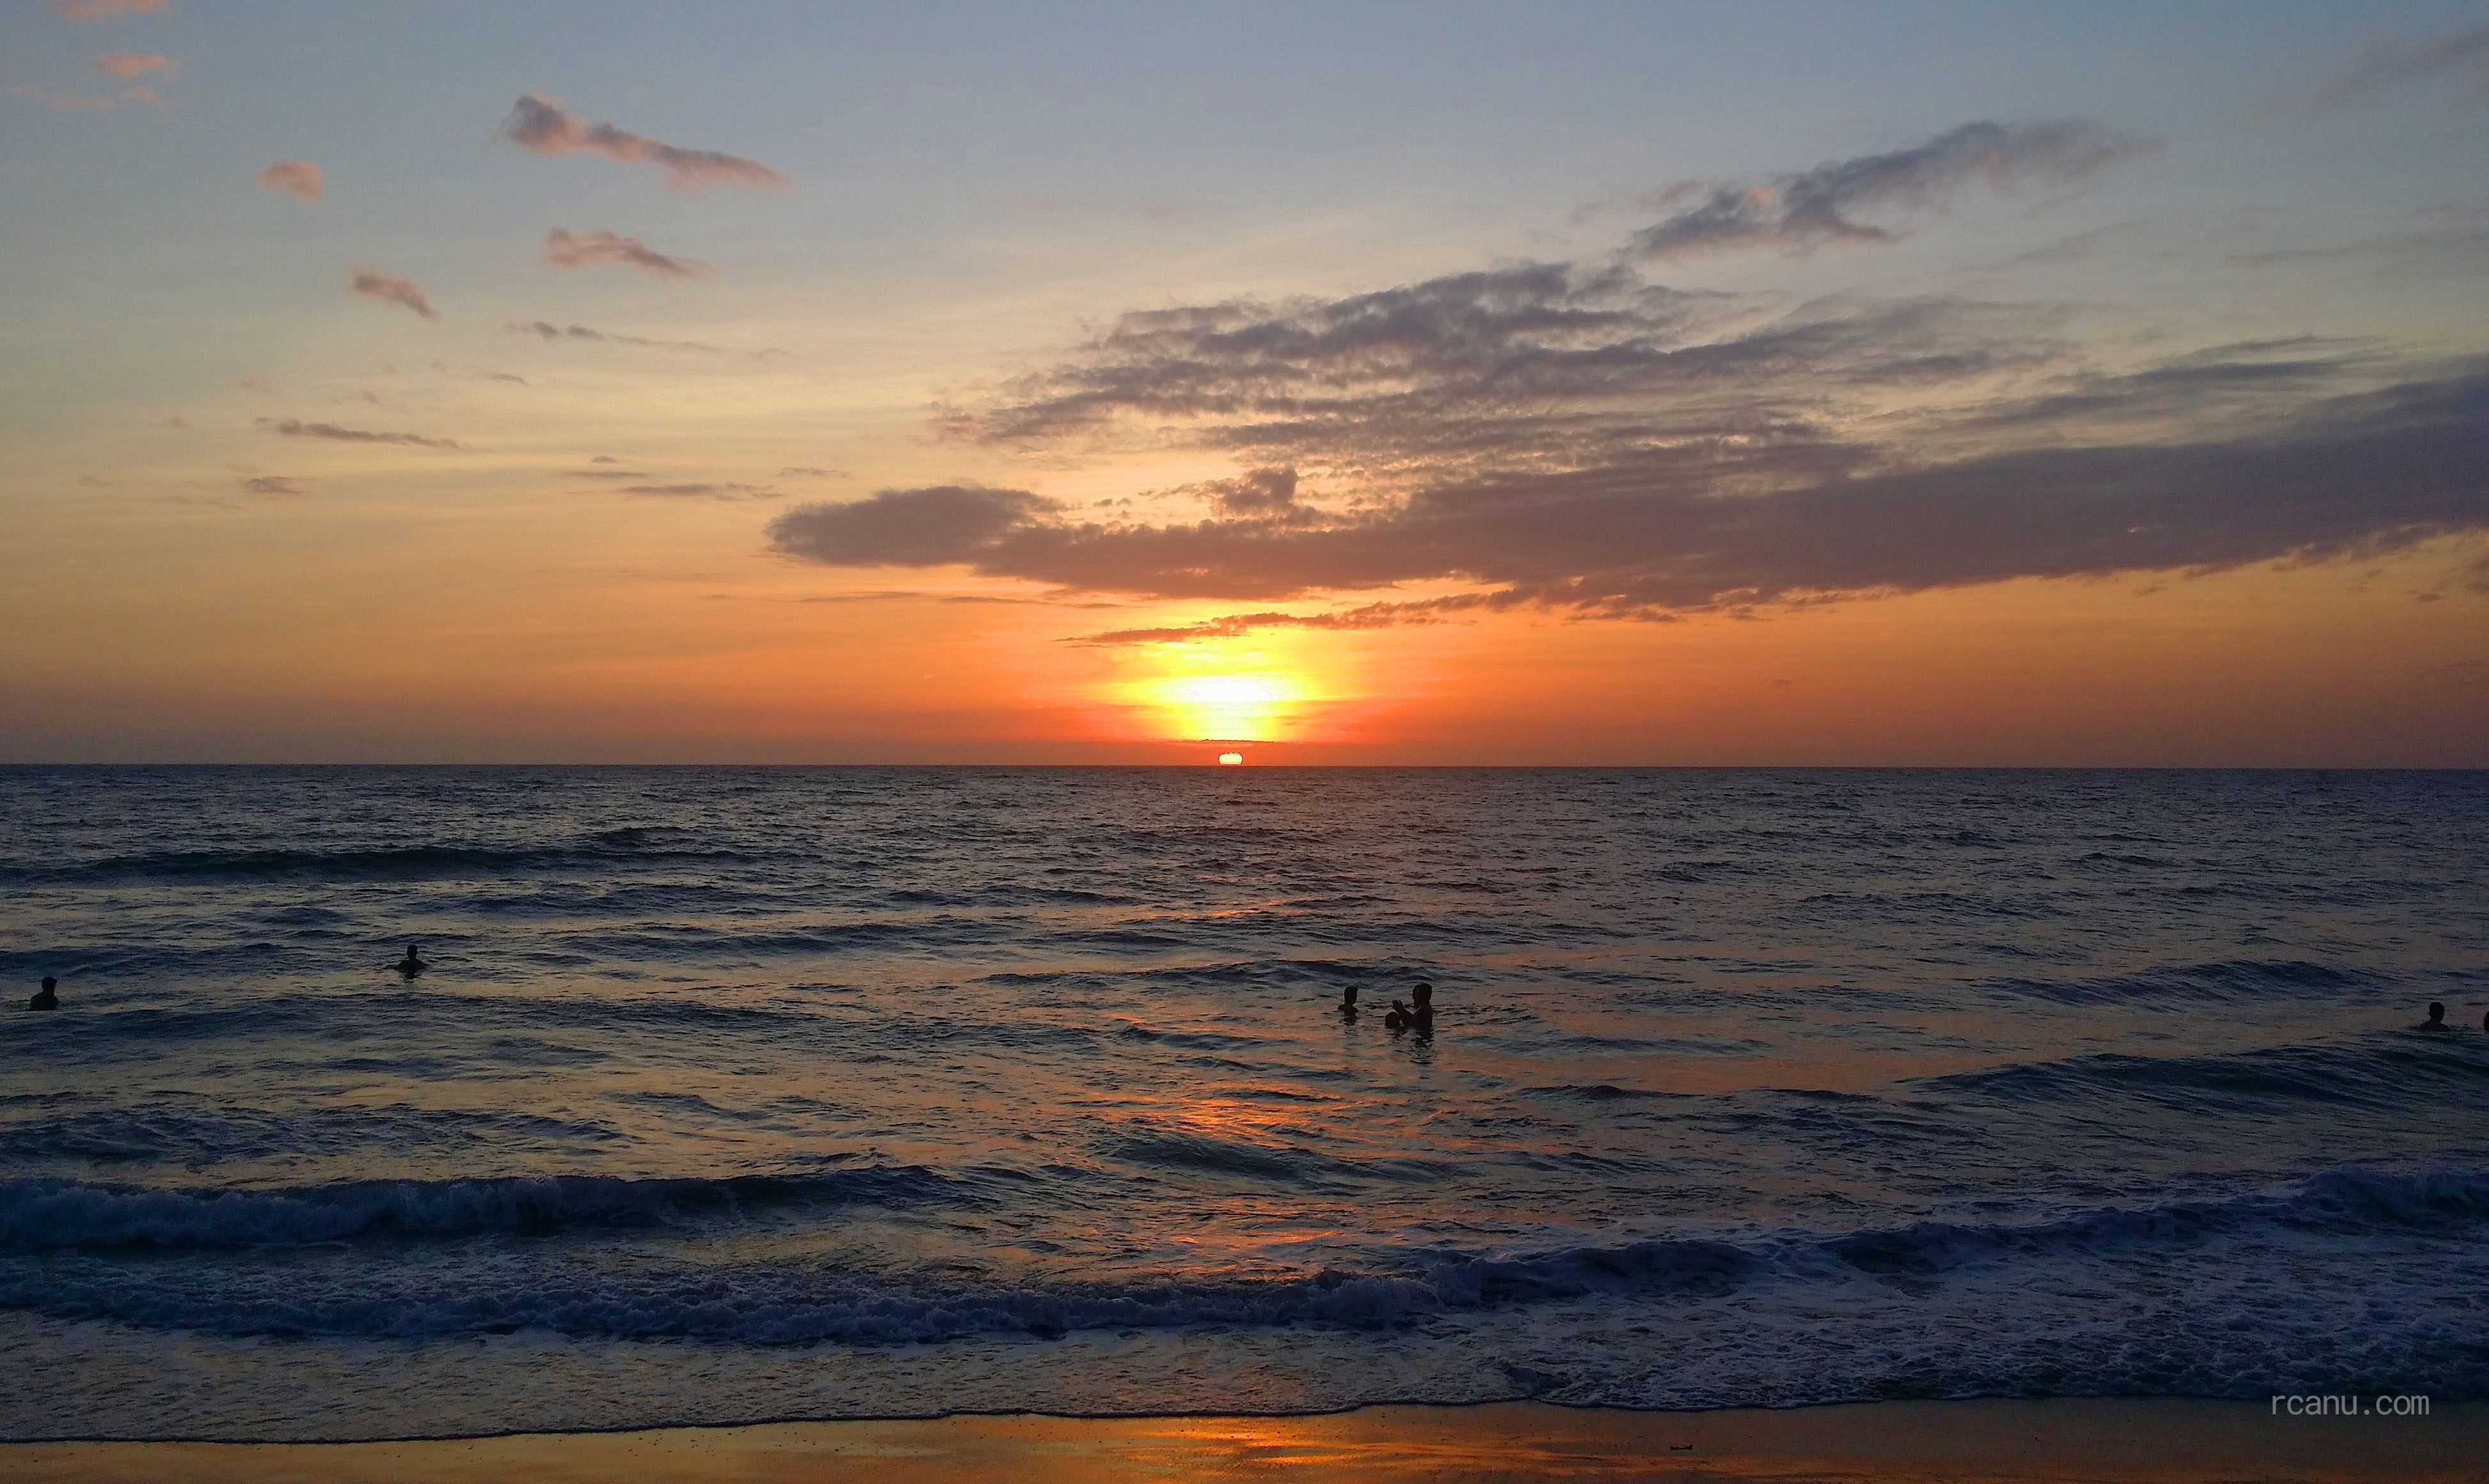 A photo of a sunset in a beach in San Fernando, La Union, Philippines